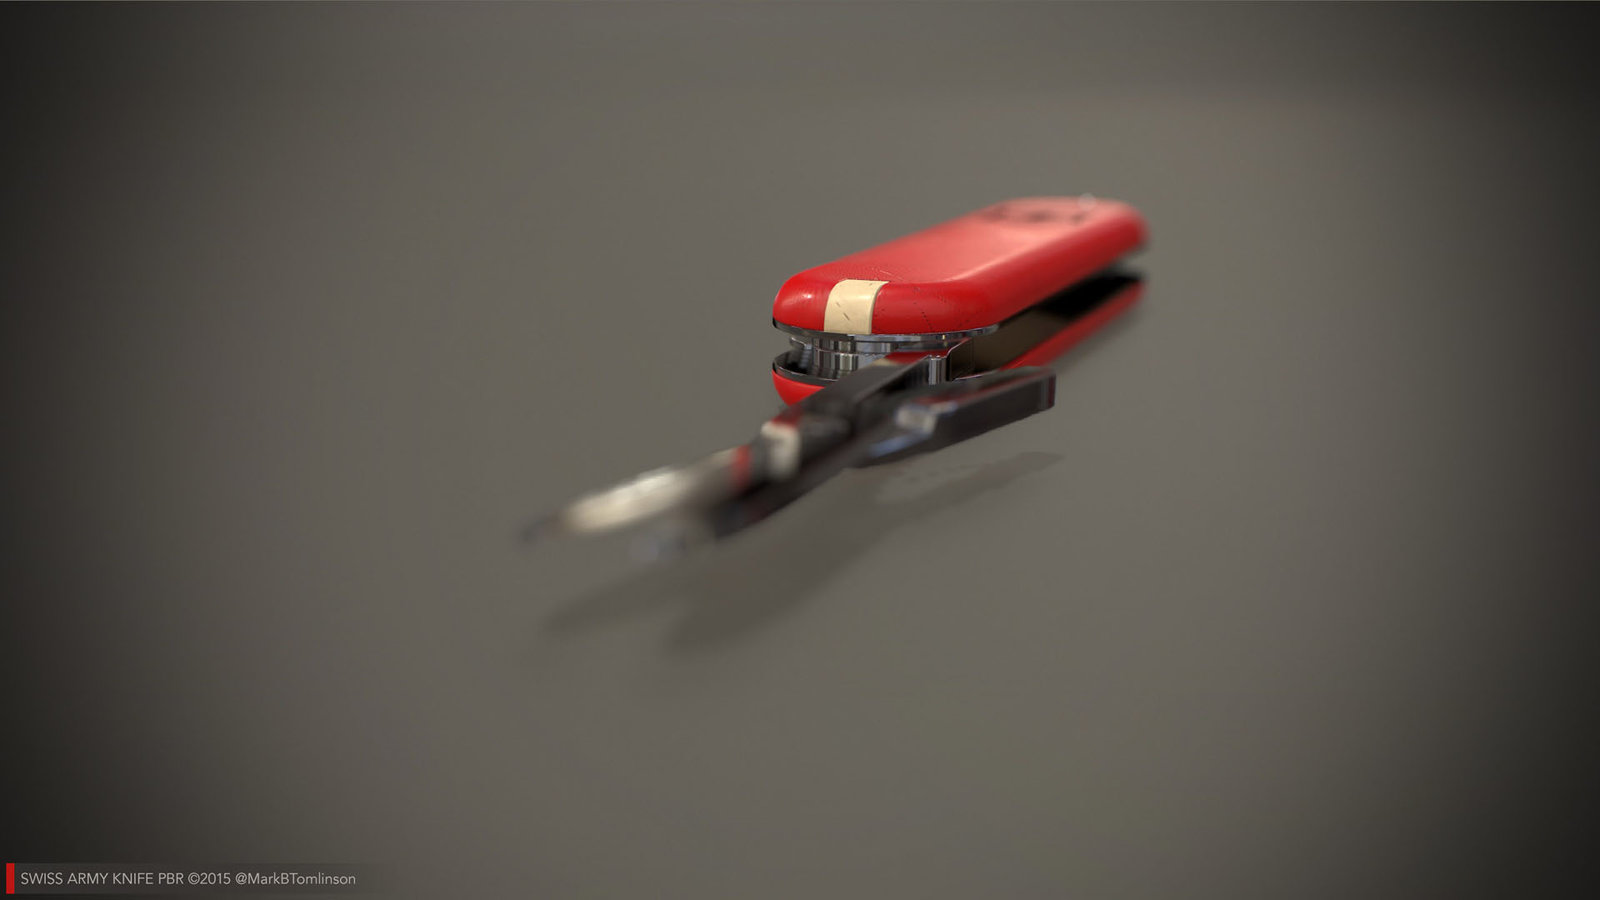 A Swiss Army Knife